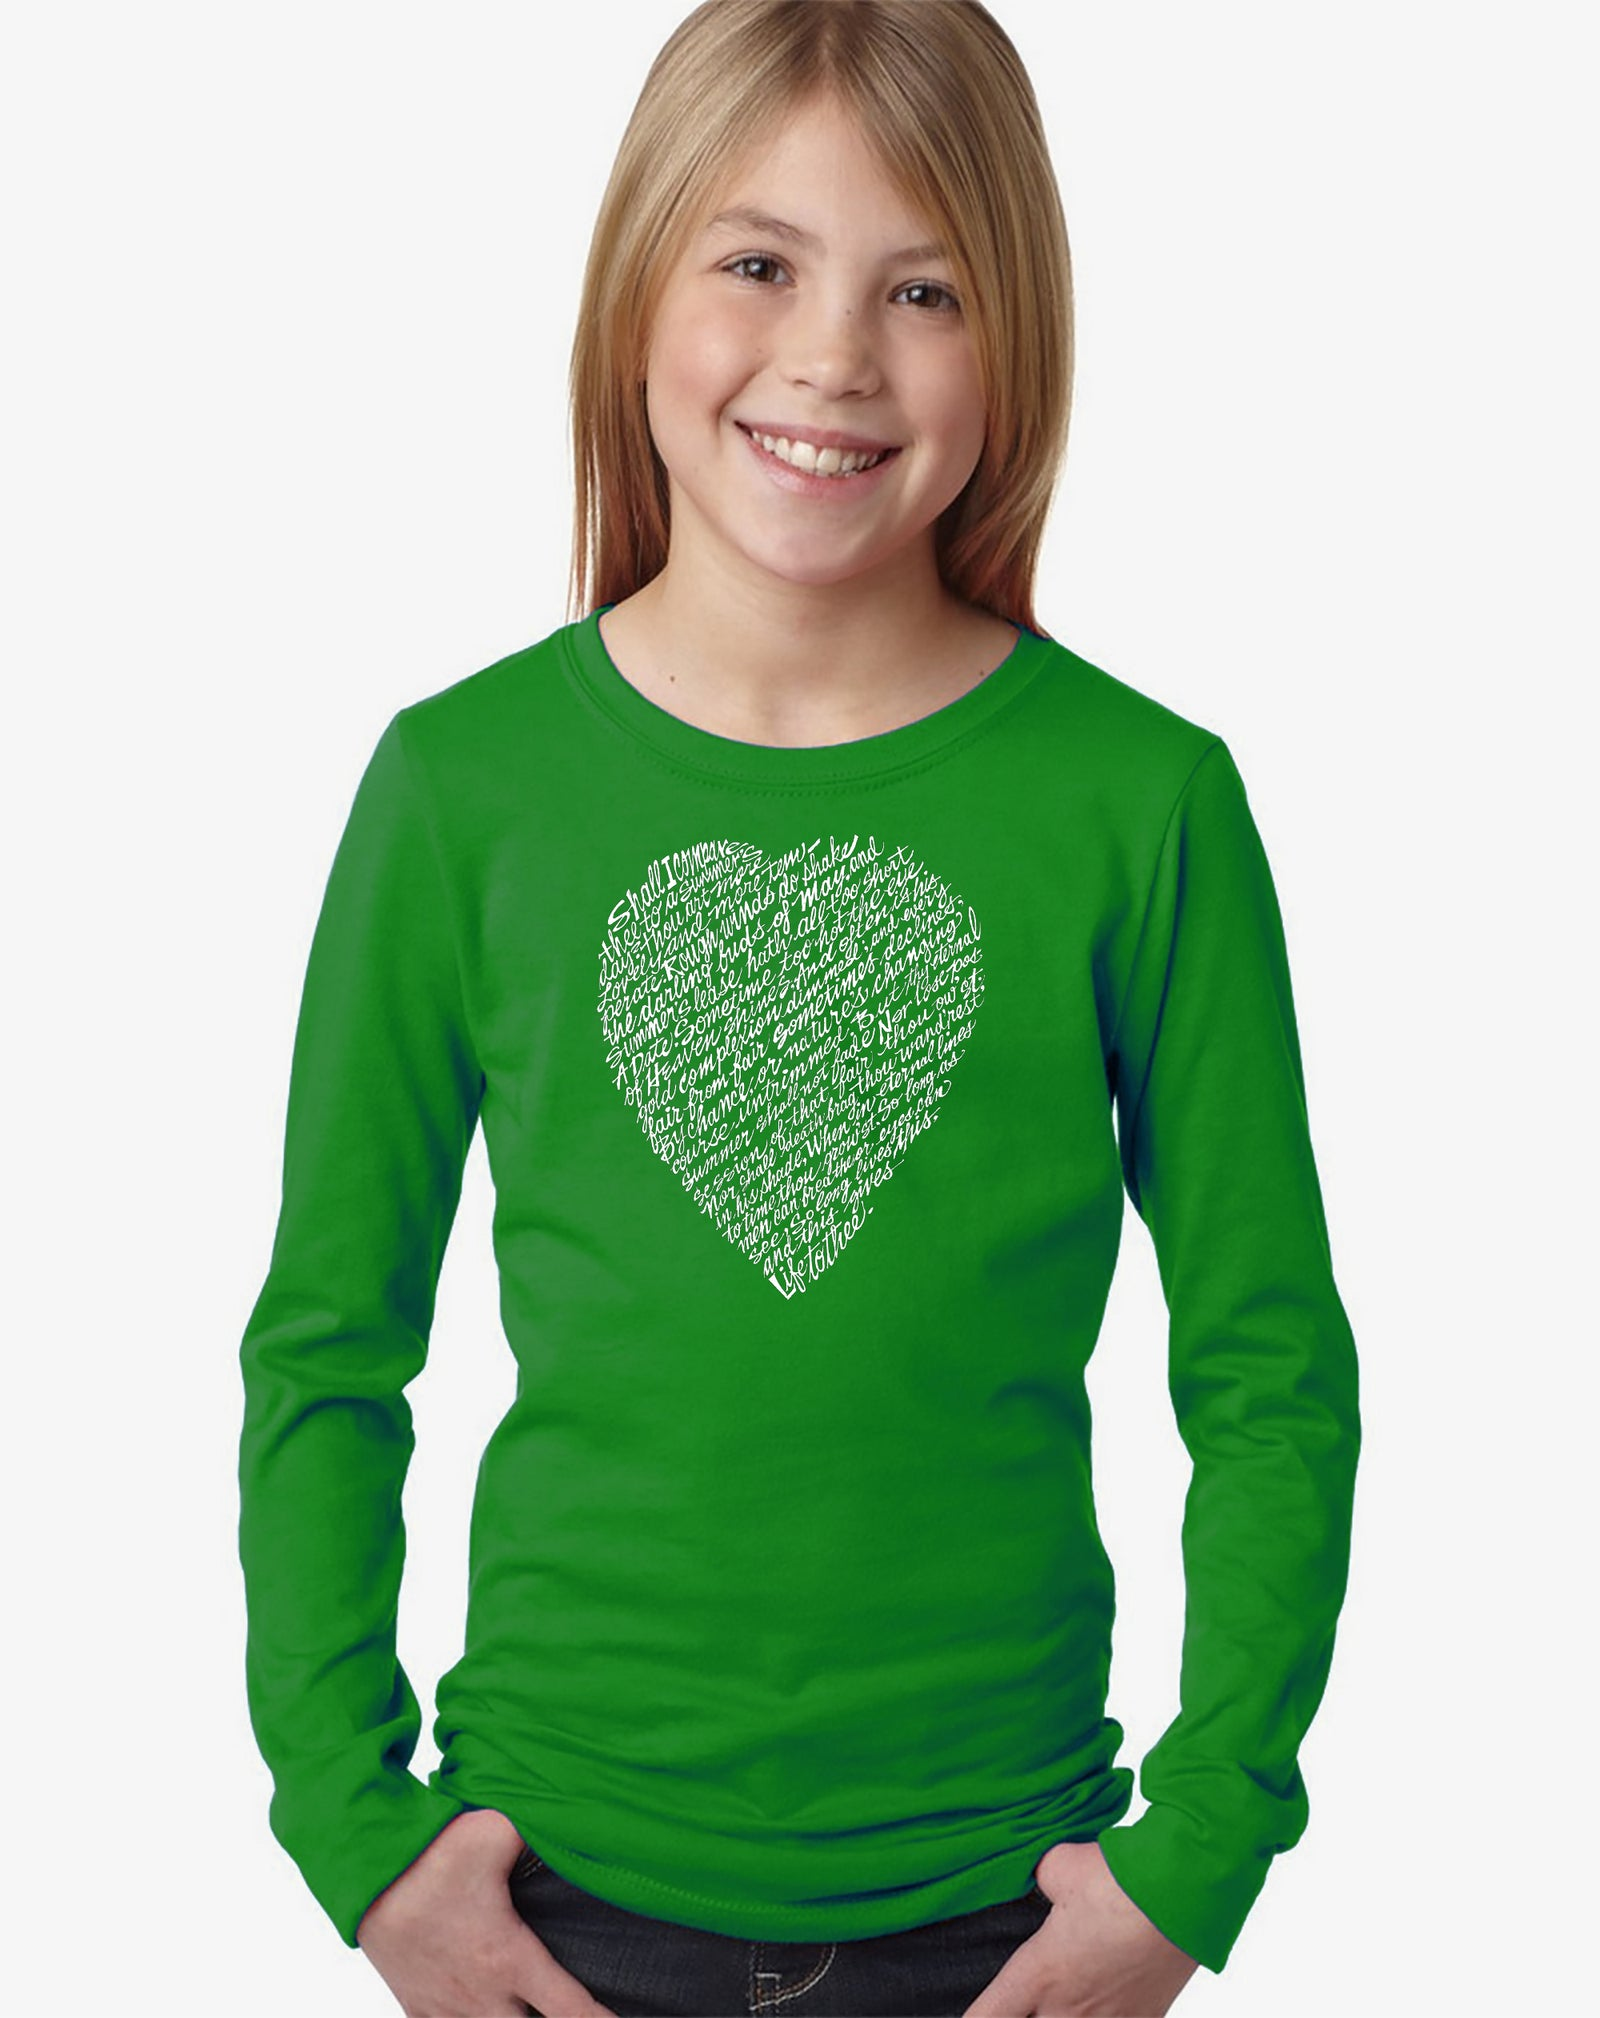 Girl's Long Sleeve - WILLIAM SHAKESPEARE'S SONNET 18